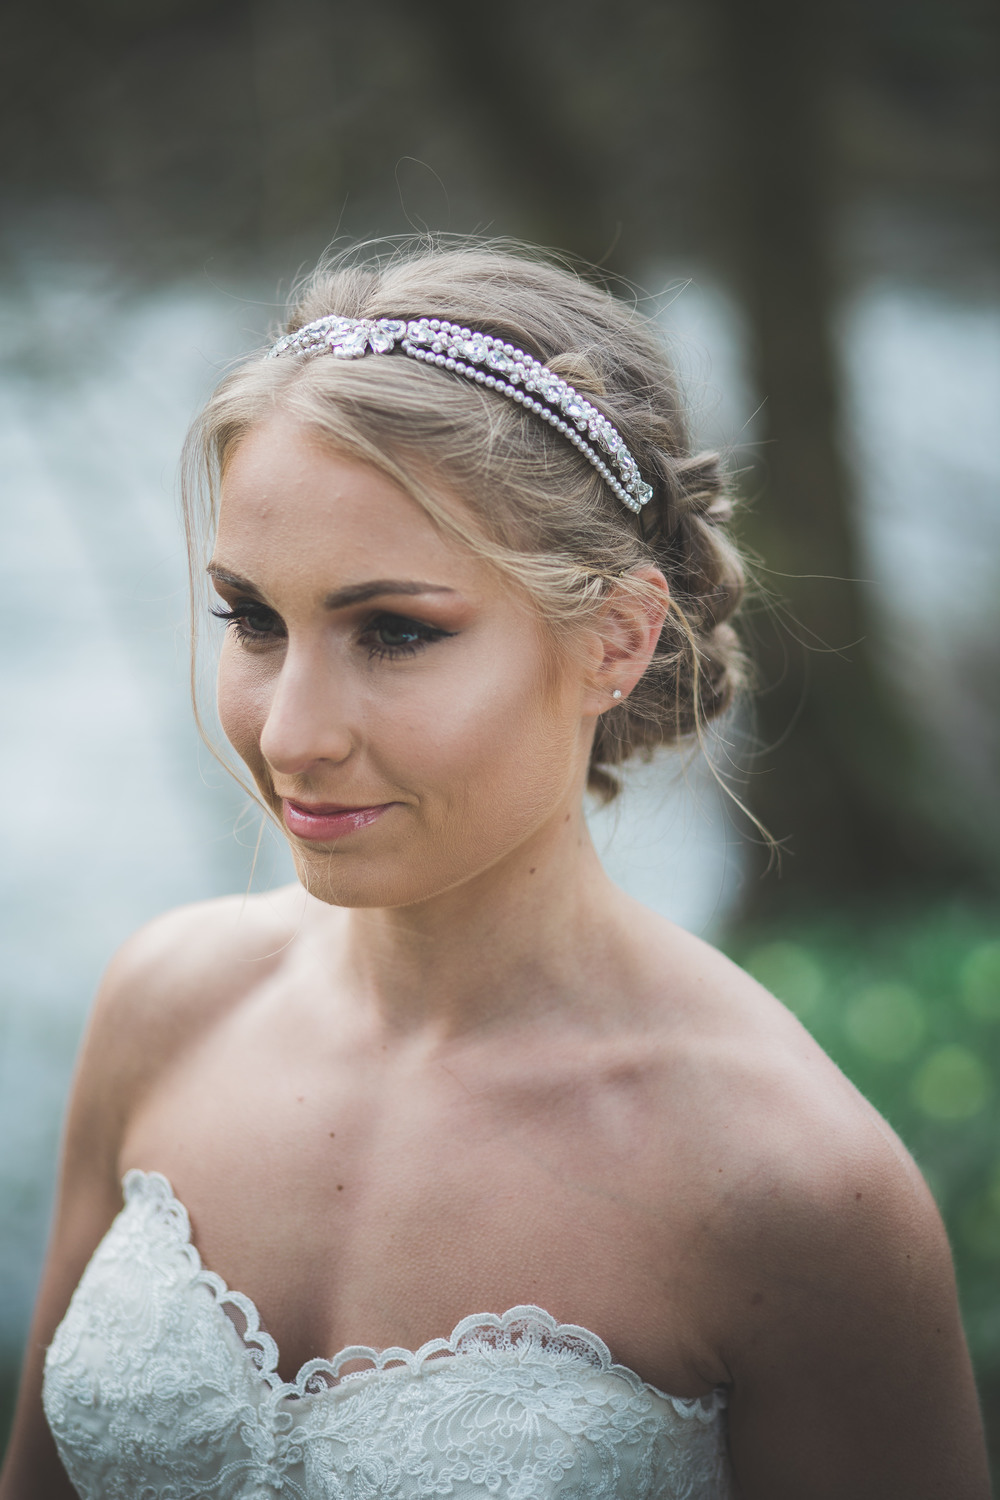 Dreamcatcher collection, LHG Designs, bridal hair accessories, image - Tandem Photography